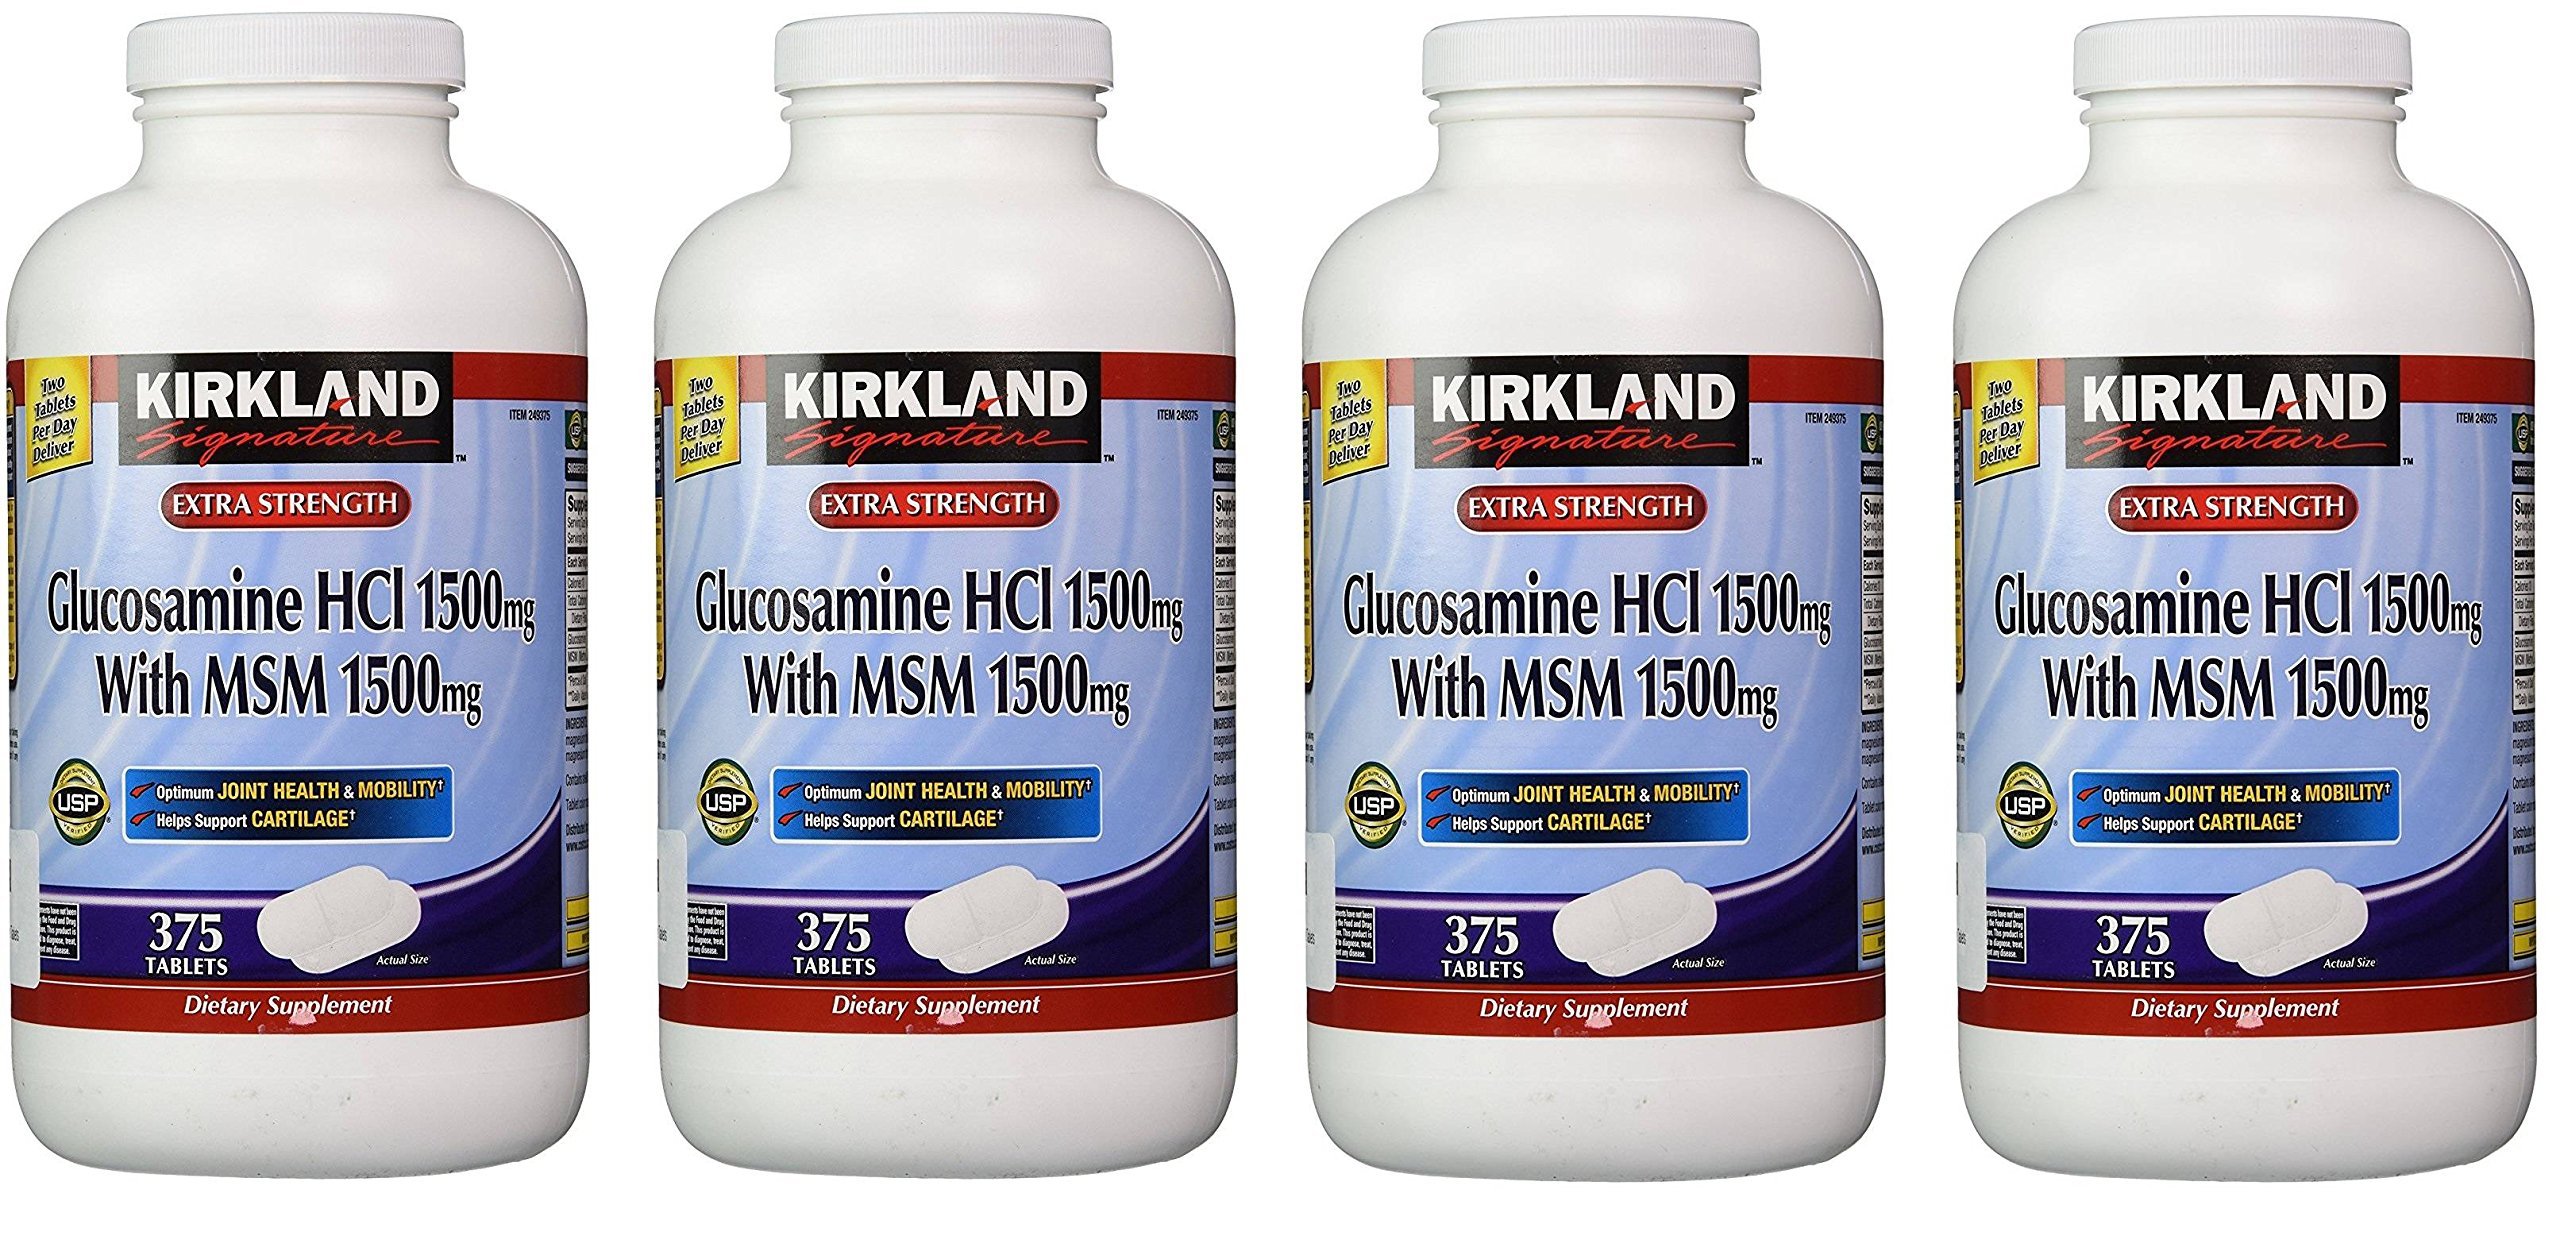 Kirkland Signature Extra Strength Glucosamine HCI 1500mg, With MSM 1500 mg, 375 Count (4 Pack)